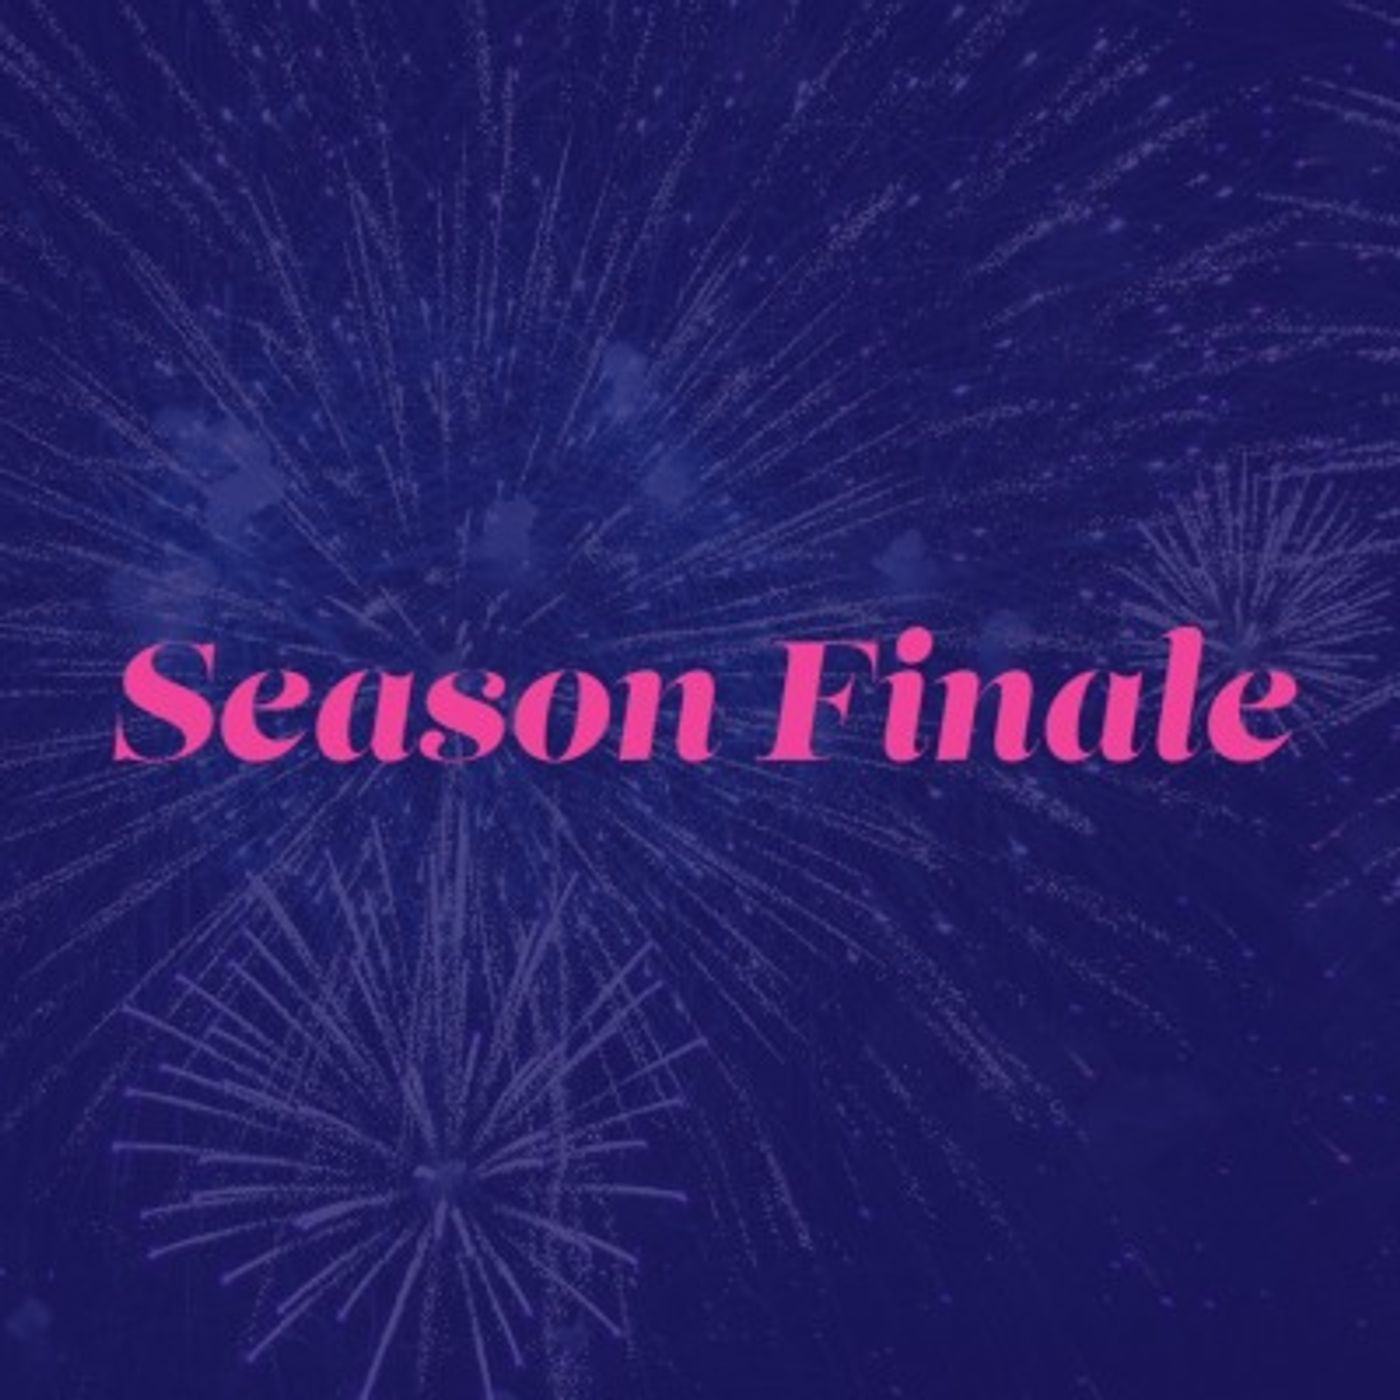 Autumn Series Finale!